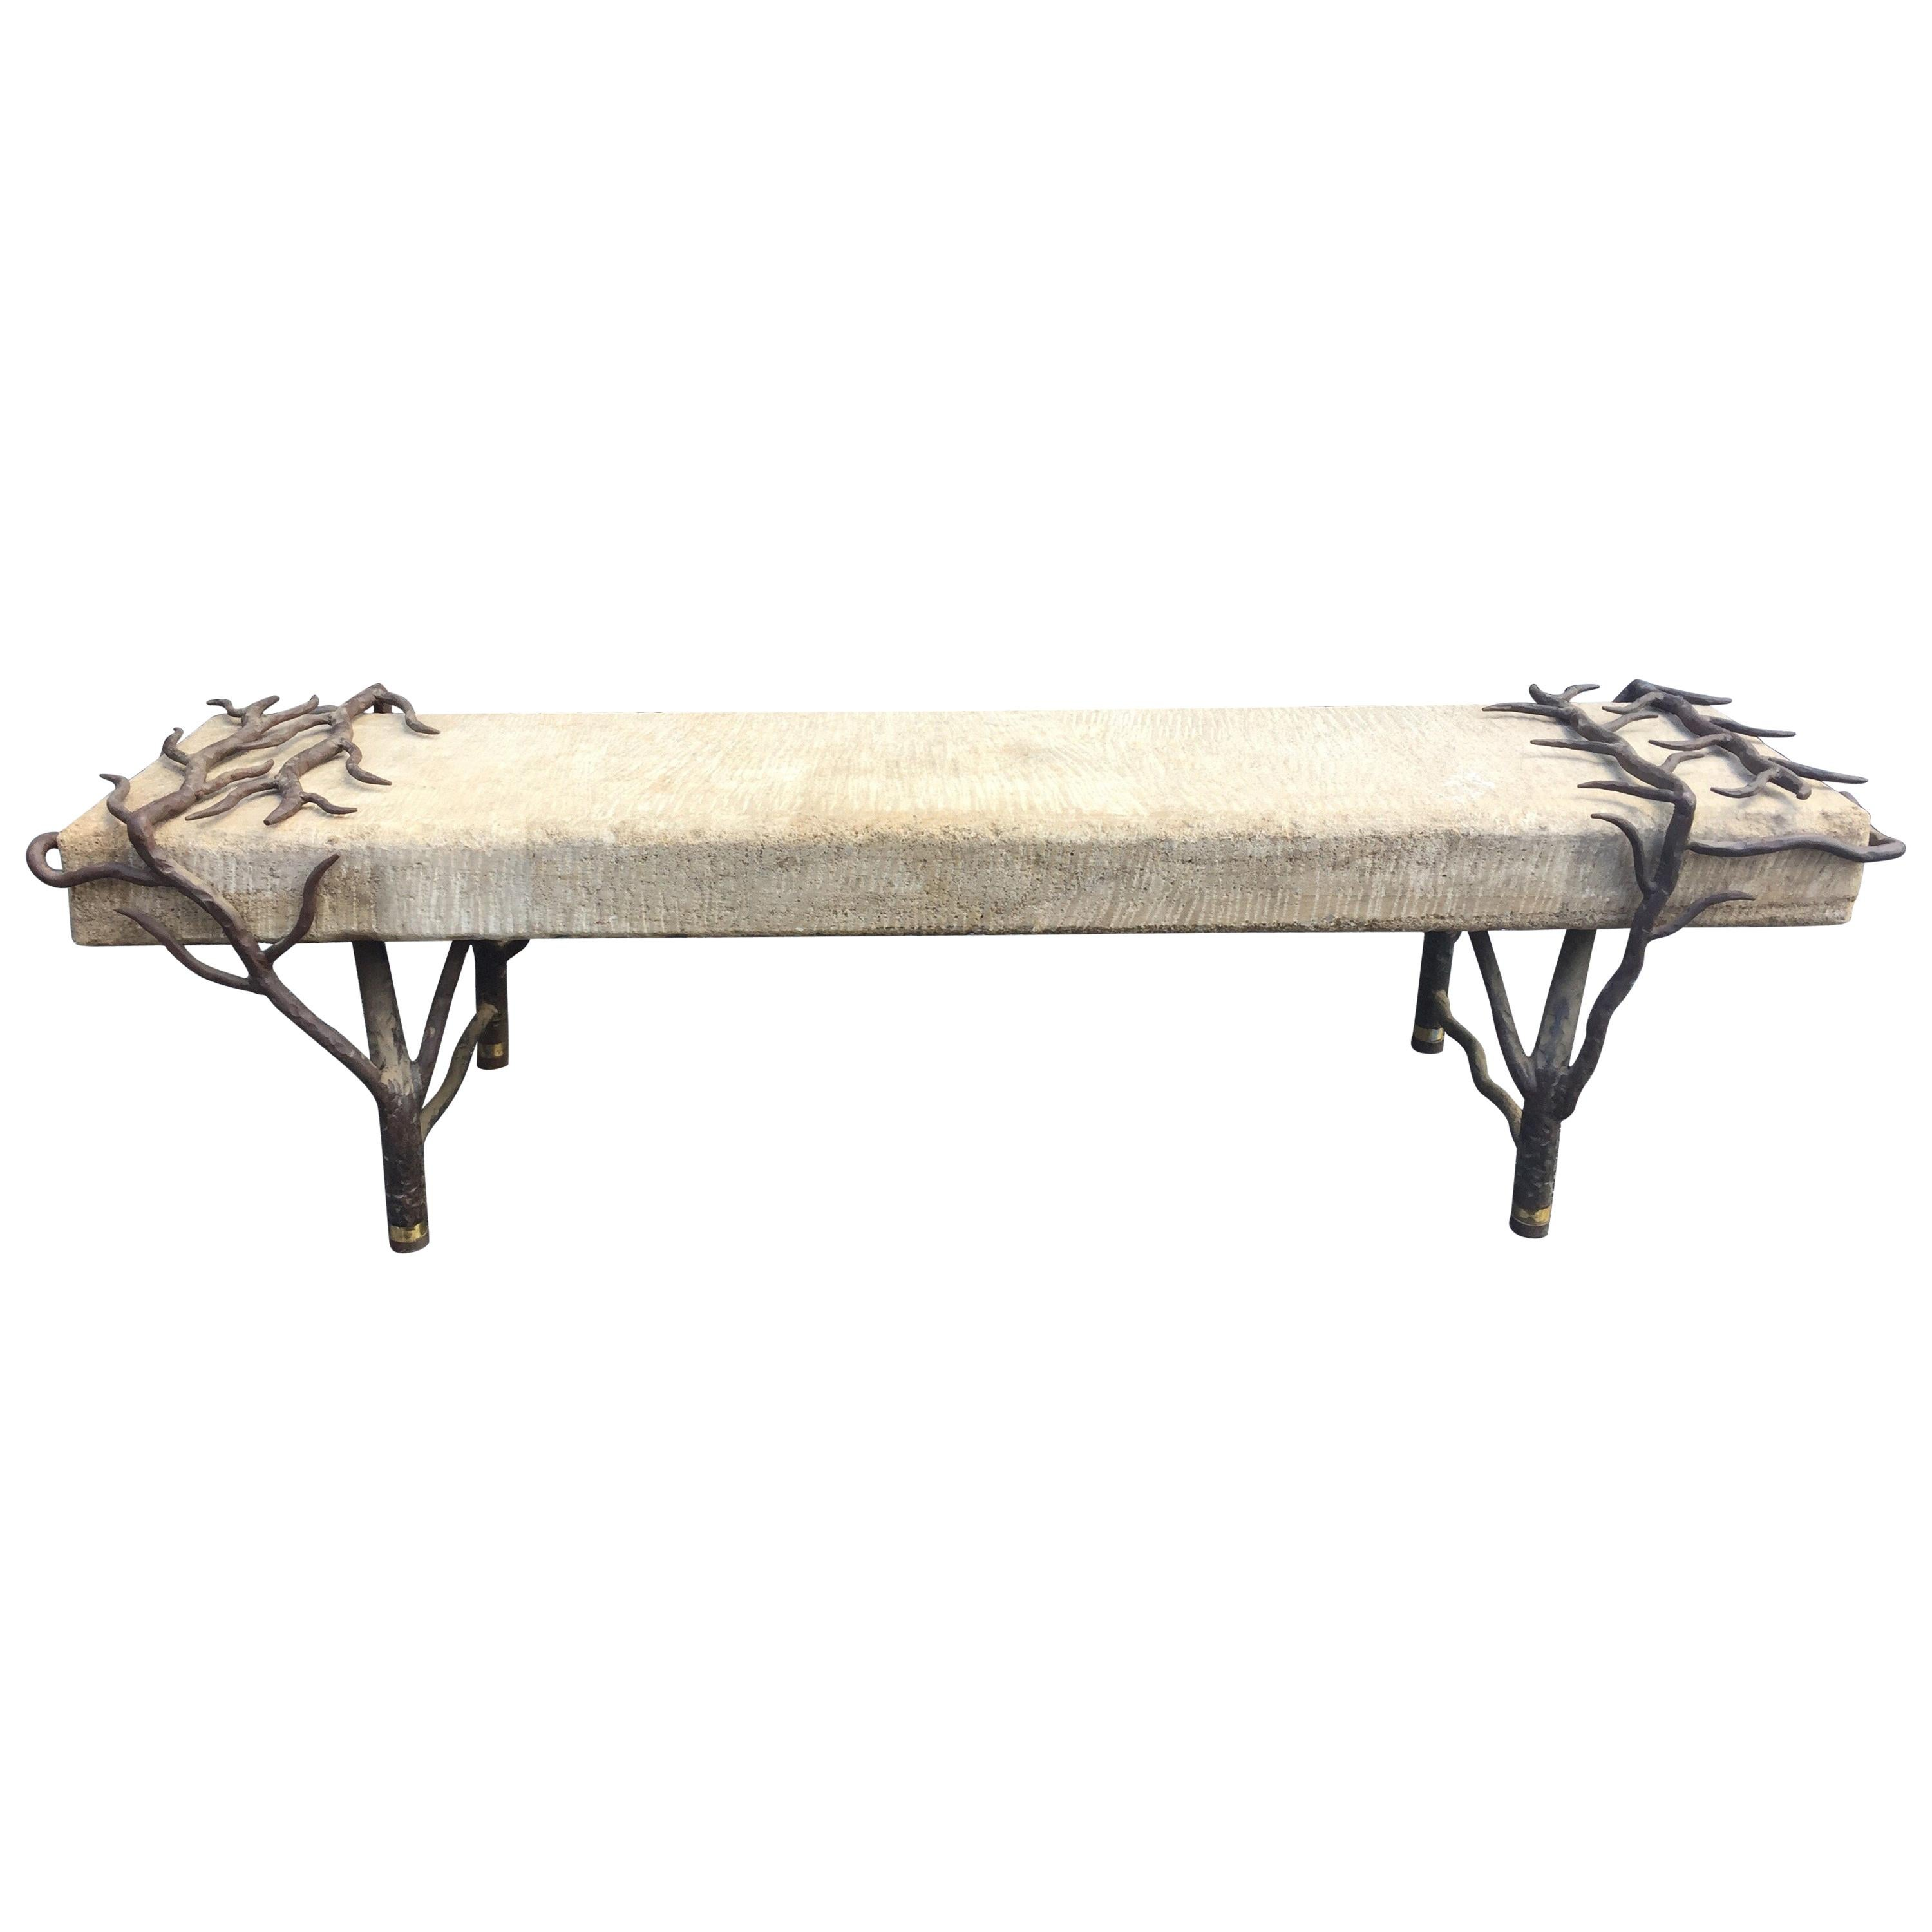 Sculptural Tree Branch Iron and Carved Stone Bench